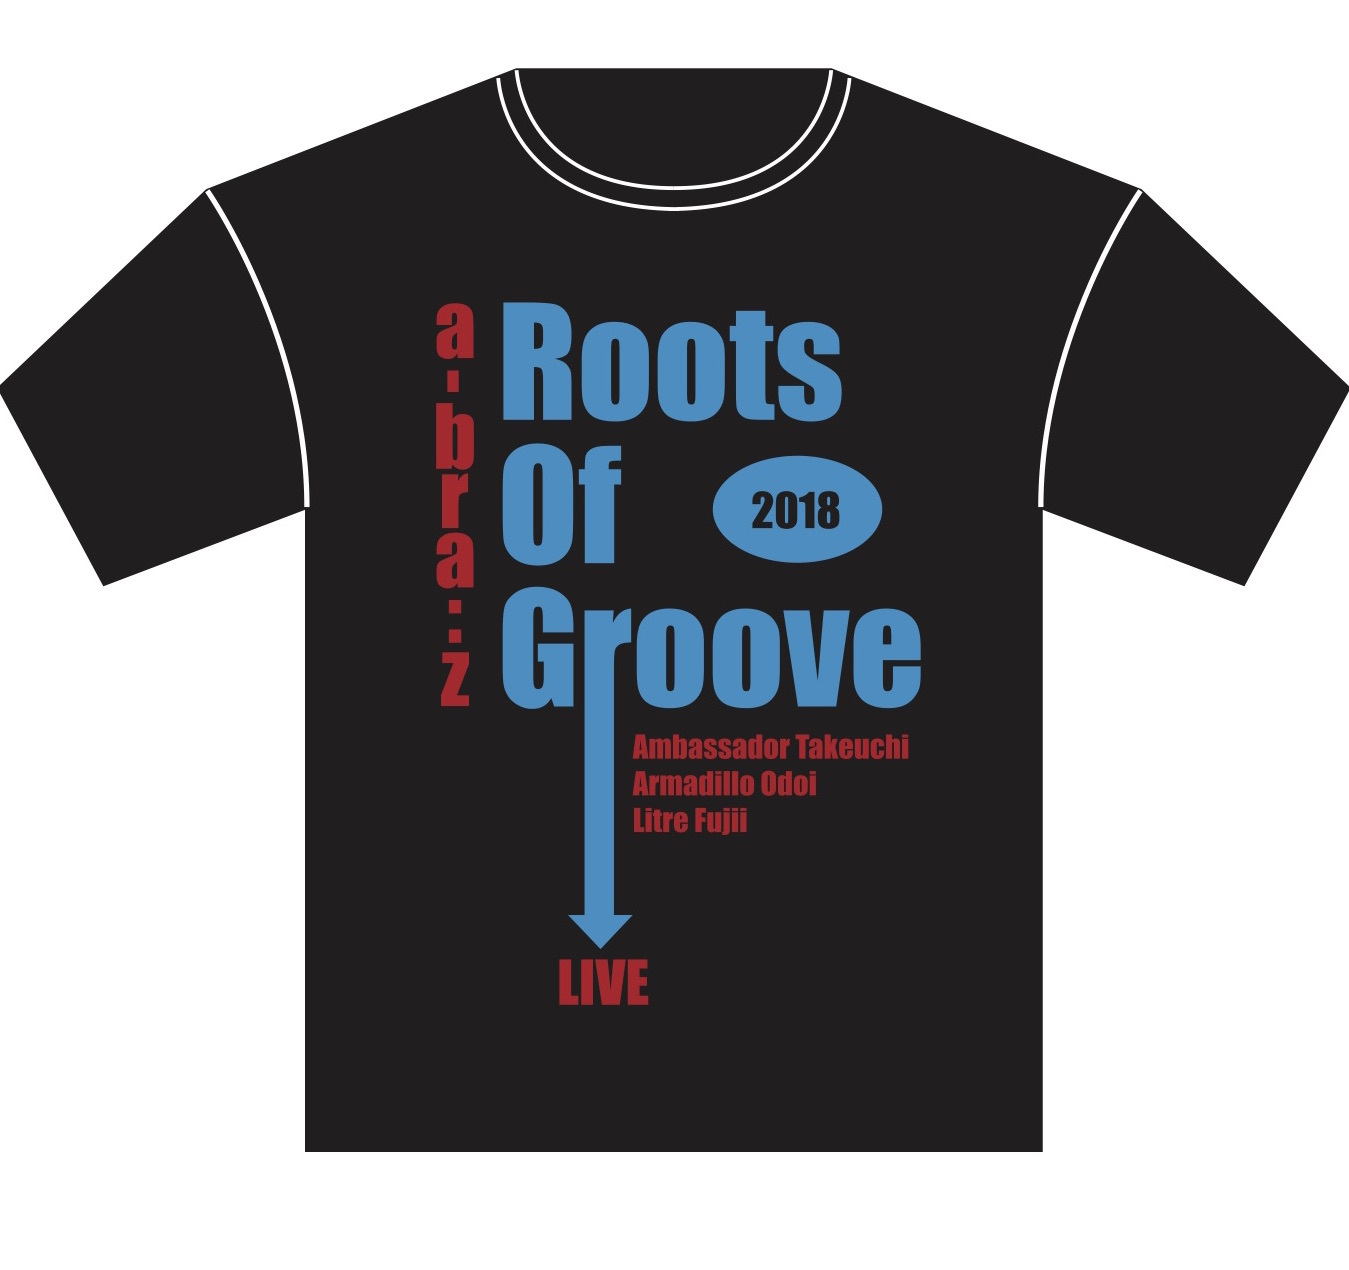 「Roots Of Groove」グッズ、受注販売スタート!_a0182479_15142336.jpg